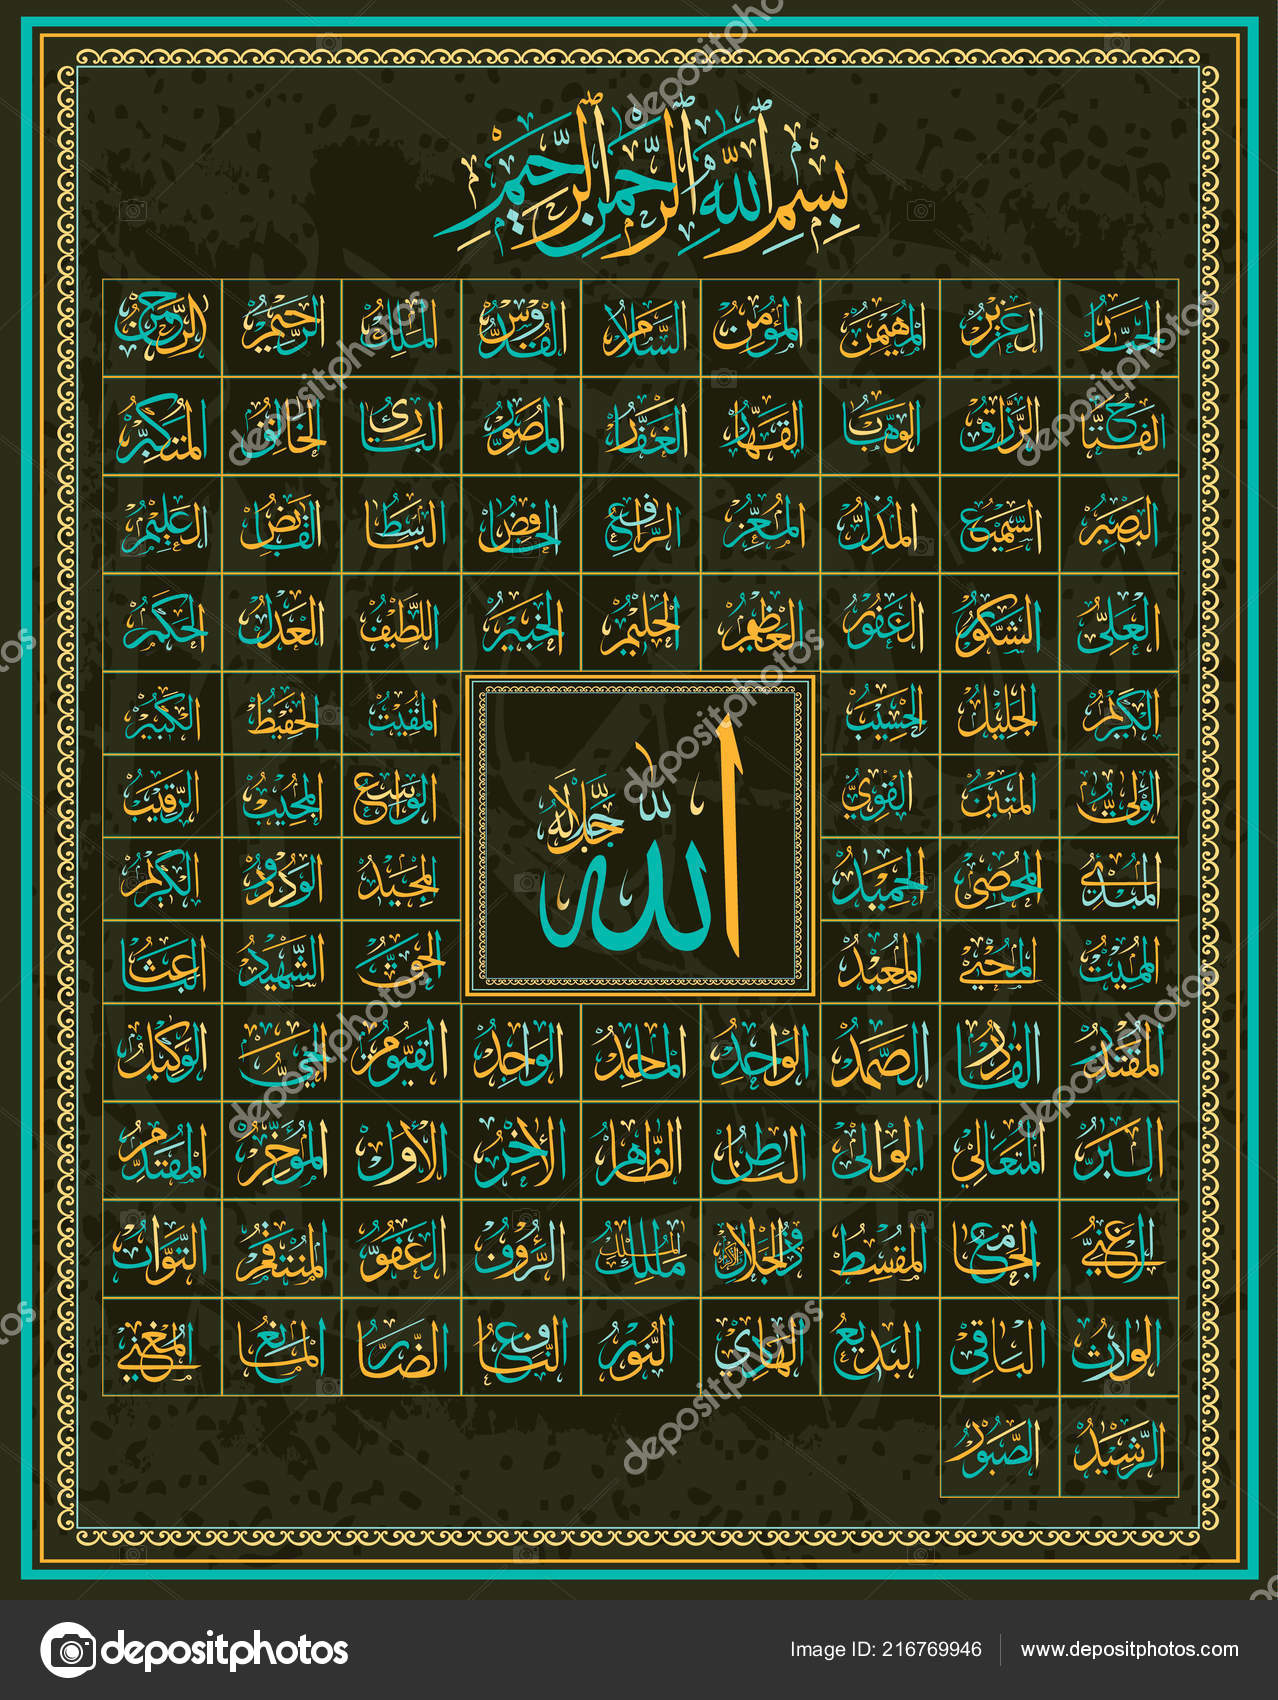 99 Name Of Allah Calligraphy ...